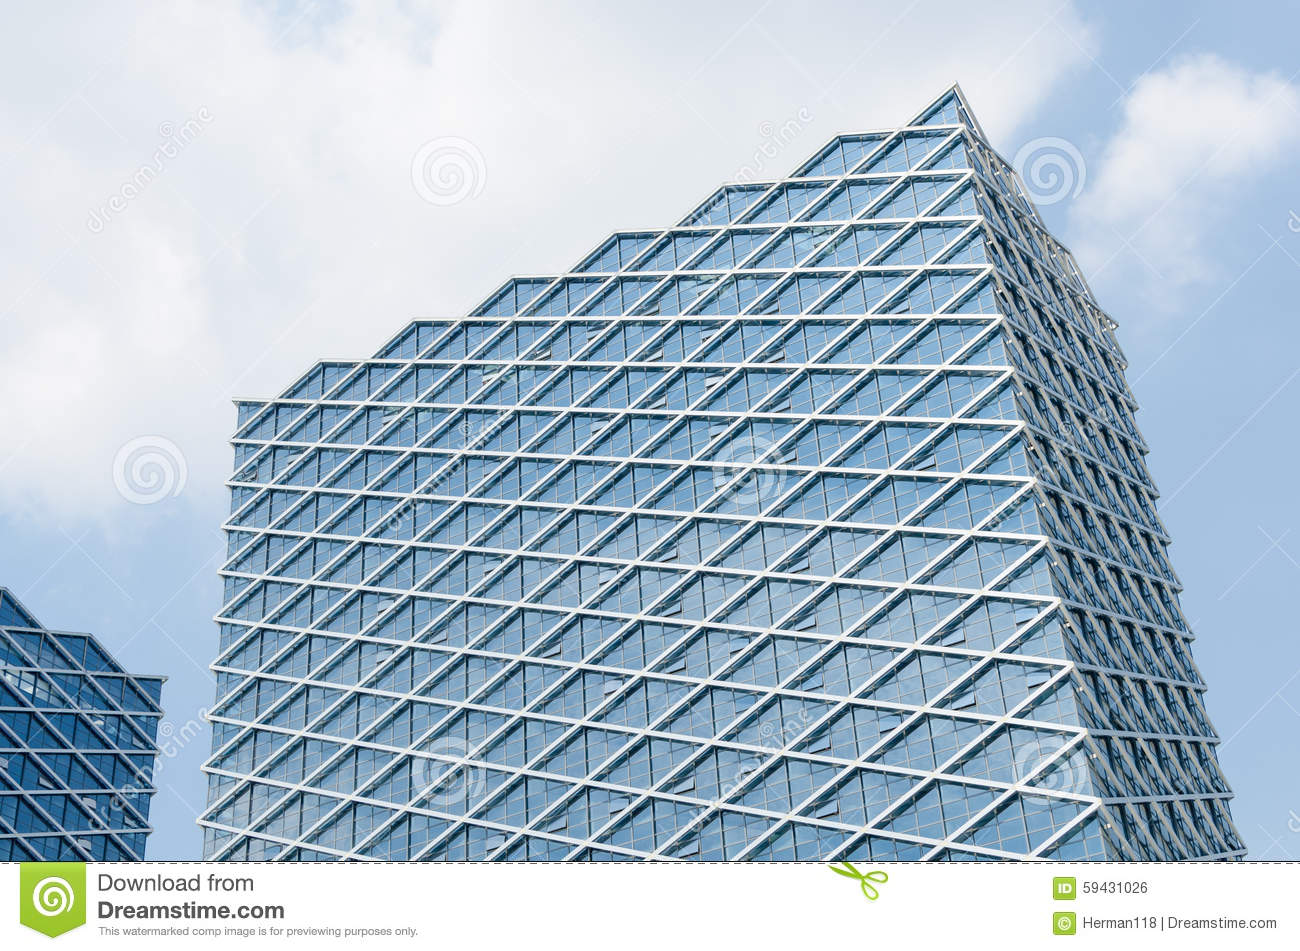 Glass curtain wall - At Noon The Modern Glass Curtain Wall Construction